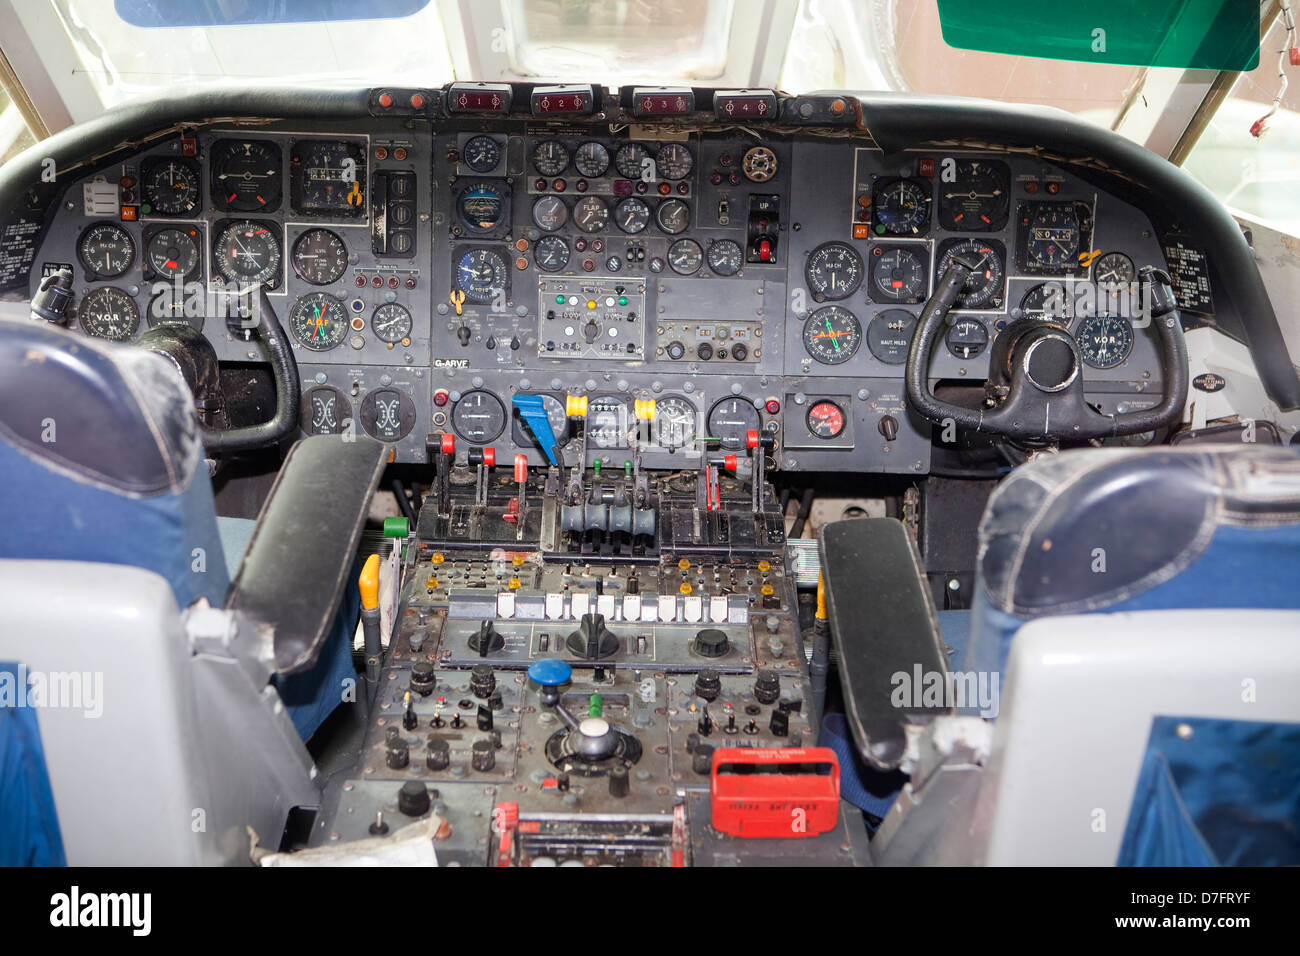 Cockpit of a Vickers VC10, a long-range British airliner, 1962, Aircraft Collection Hermeskeil, Germany, Europe - Stock Image